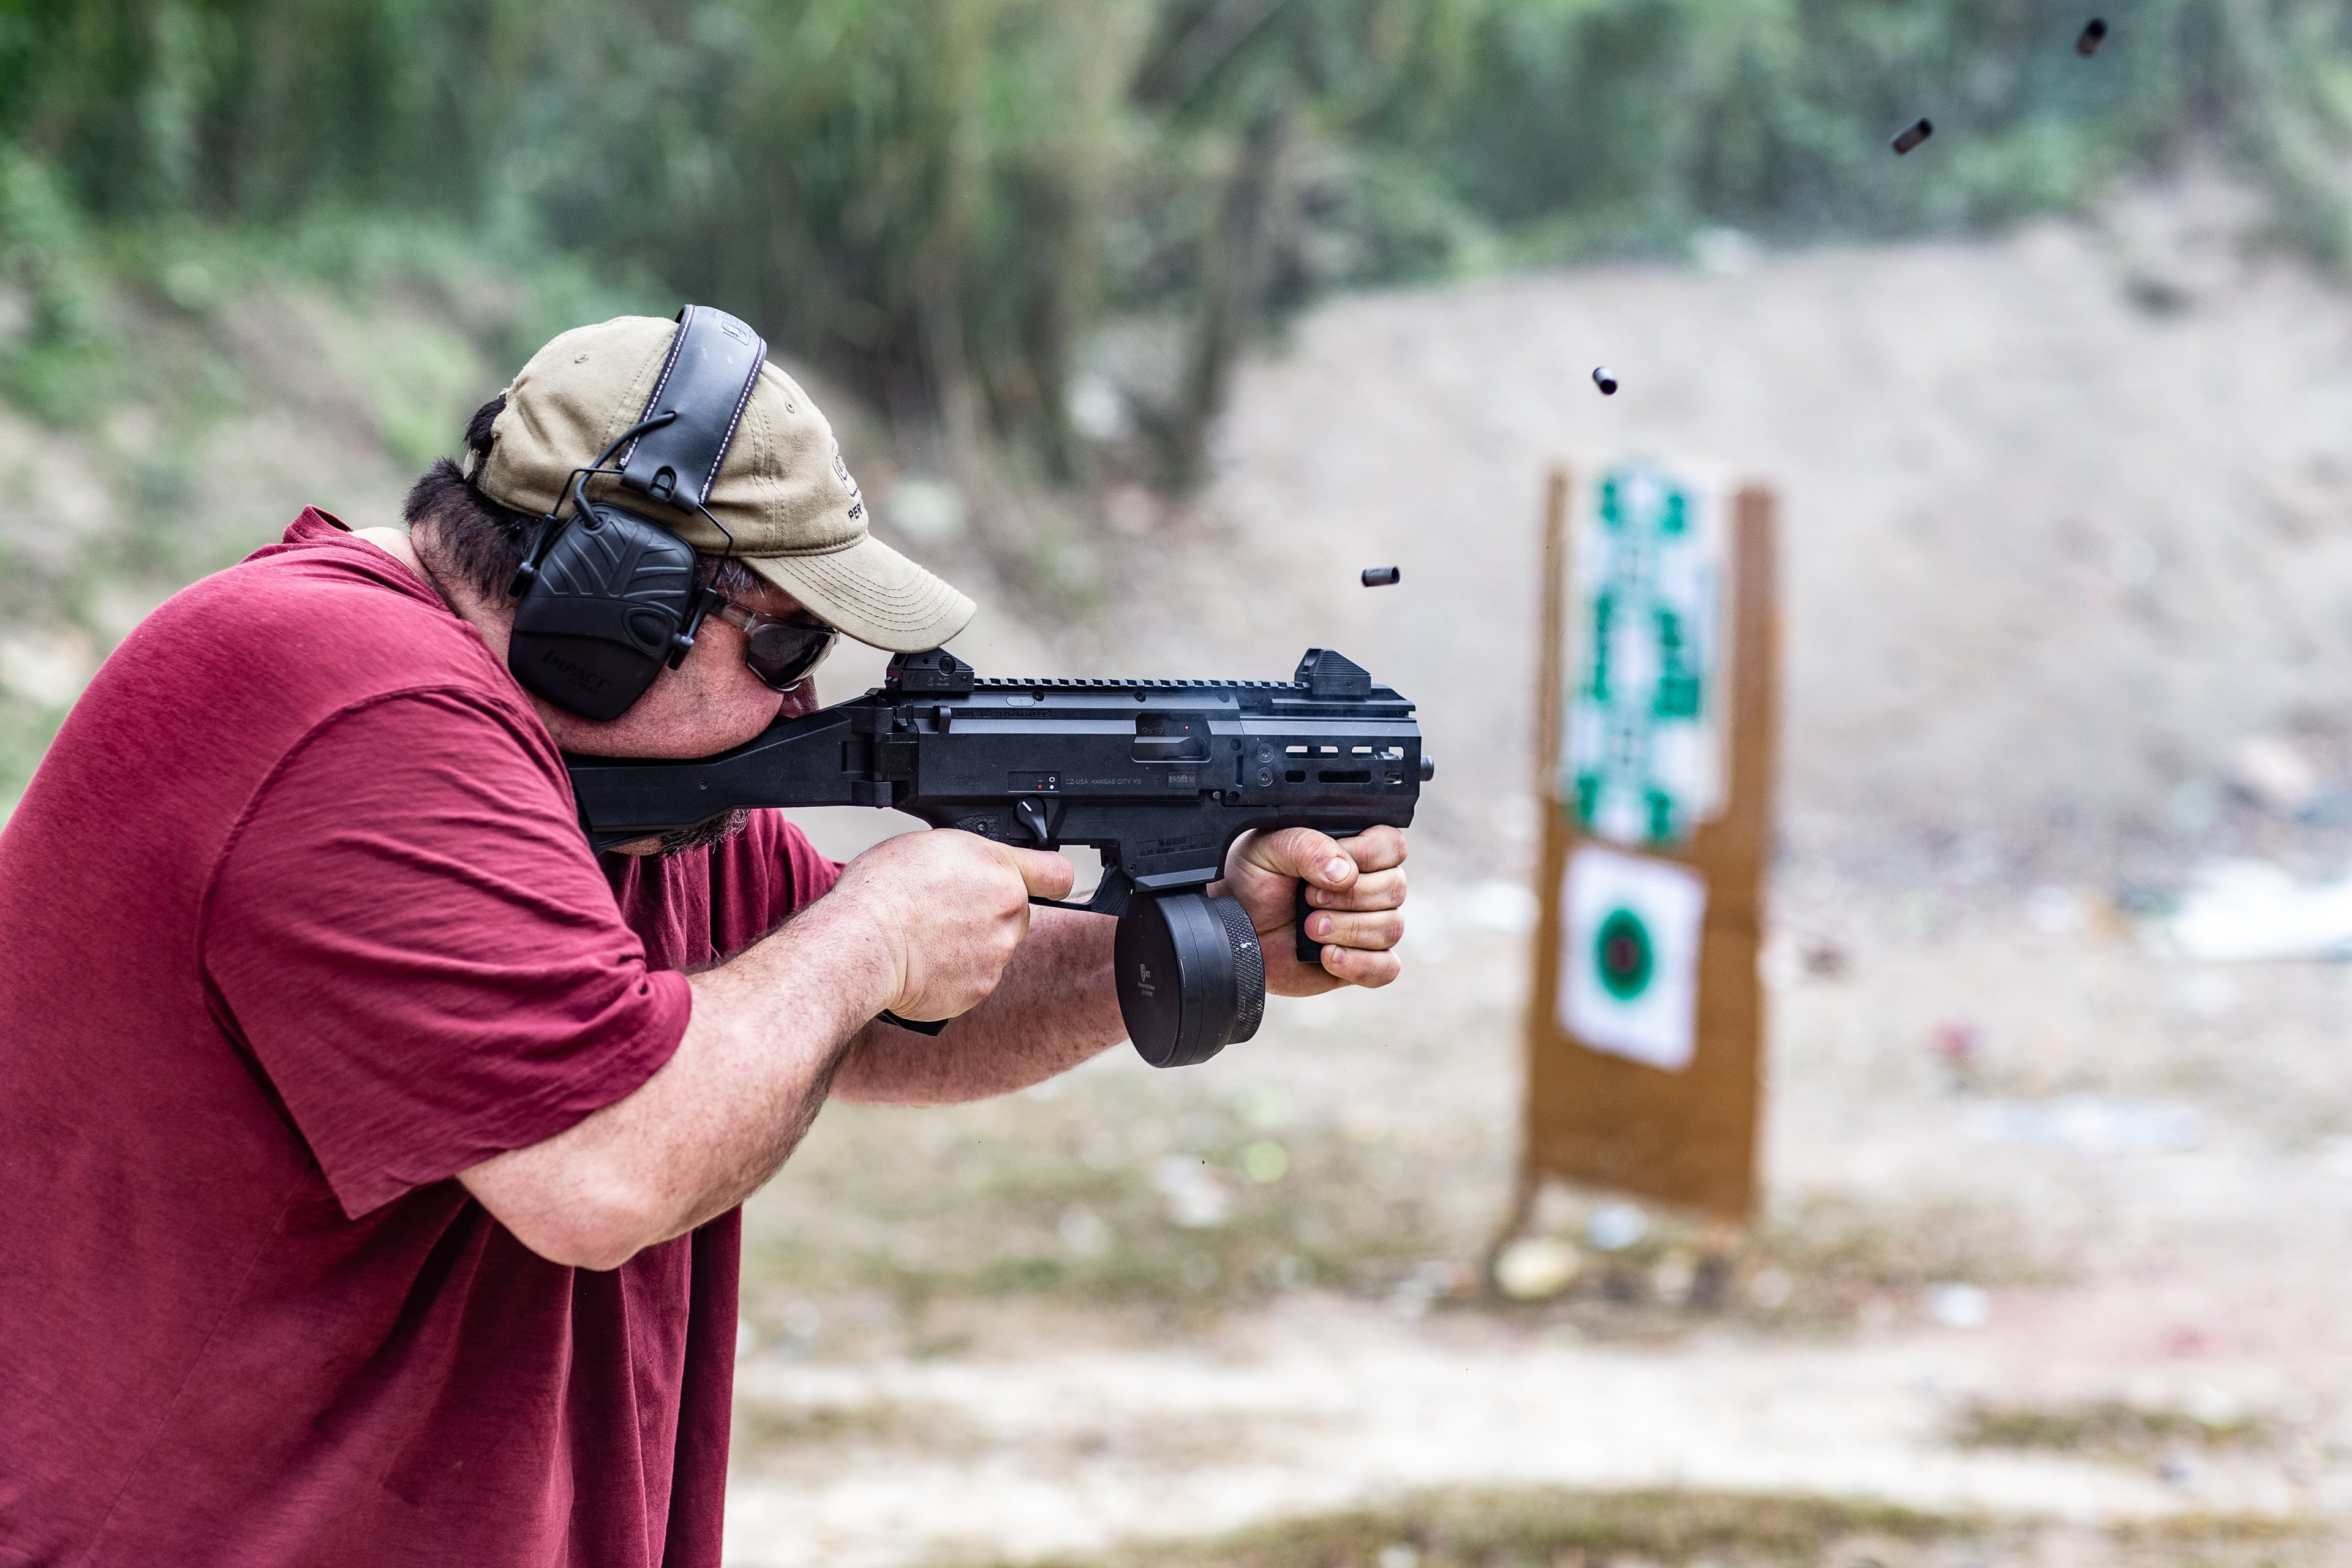 Dedicated ranges get you out of the house and into the great outdoors, and you sometimes get to see cool stuff like this full-auto CZ Scorpion EVO 3 via CW Gunwerks...